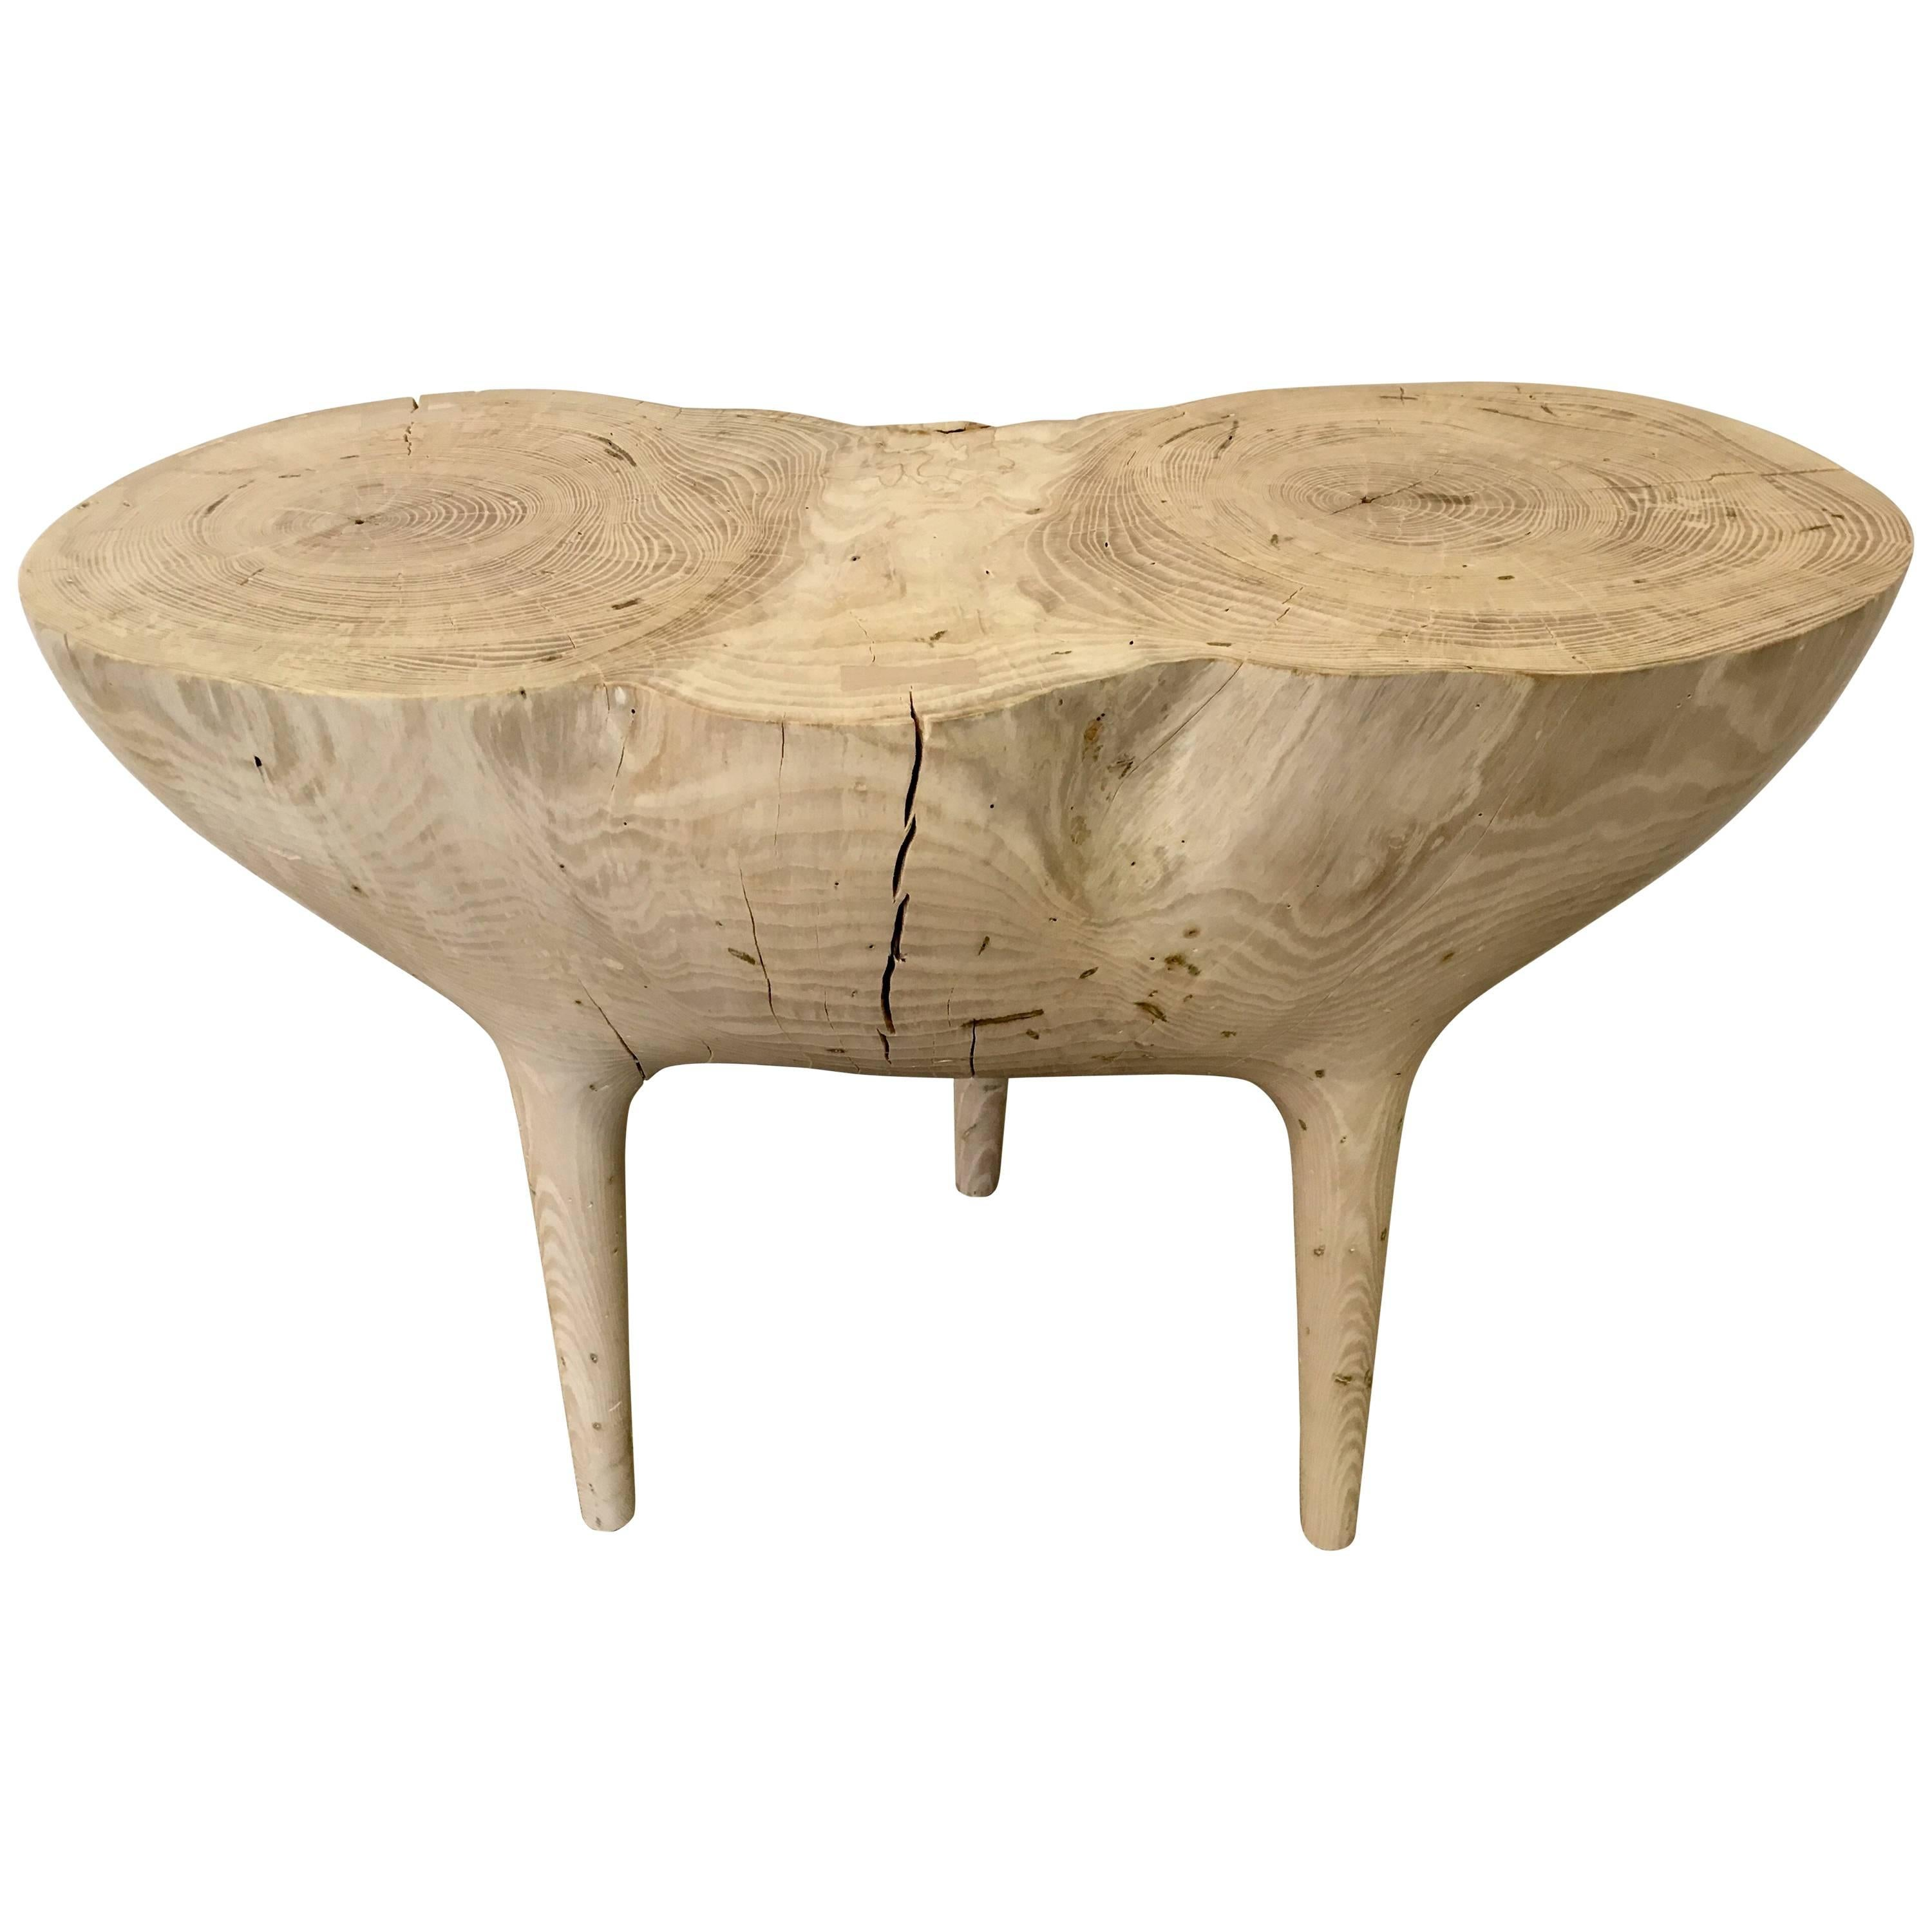 Bleached Ash Contemporary Hand-Carved Side Table